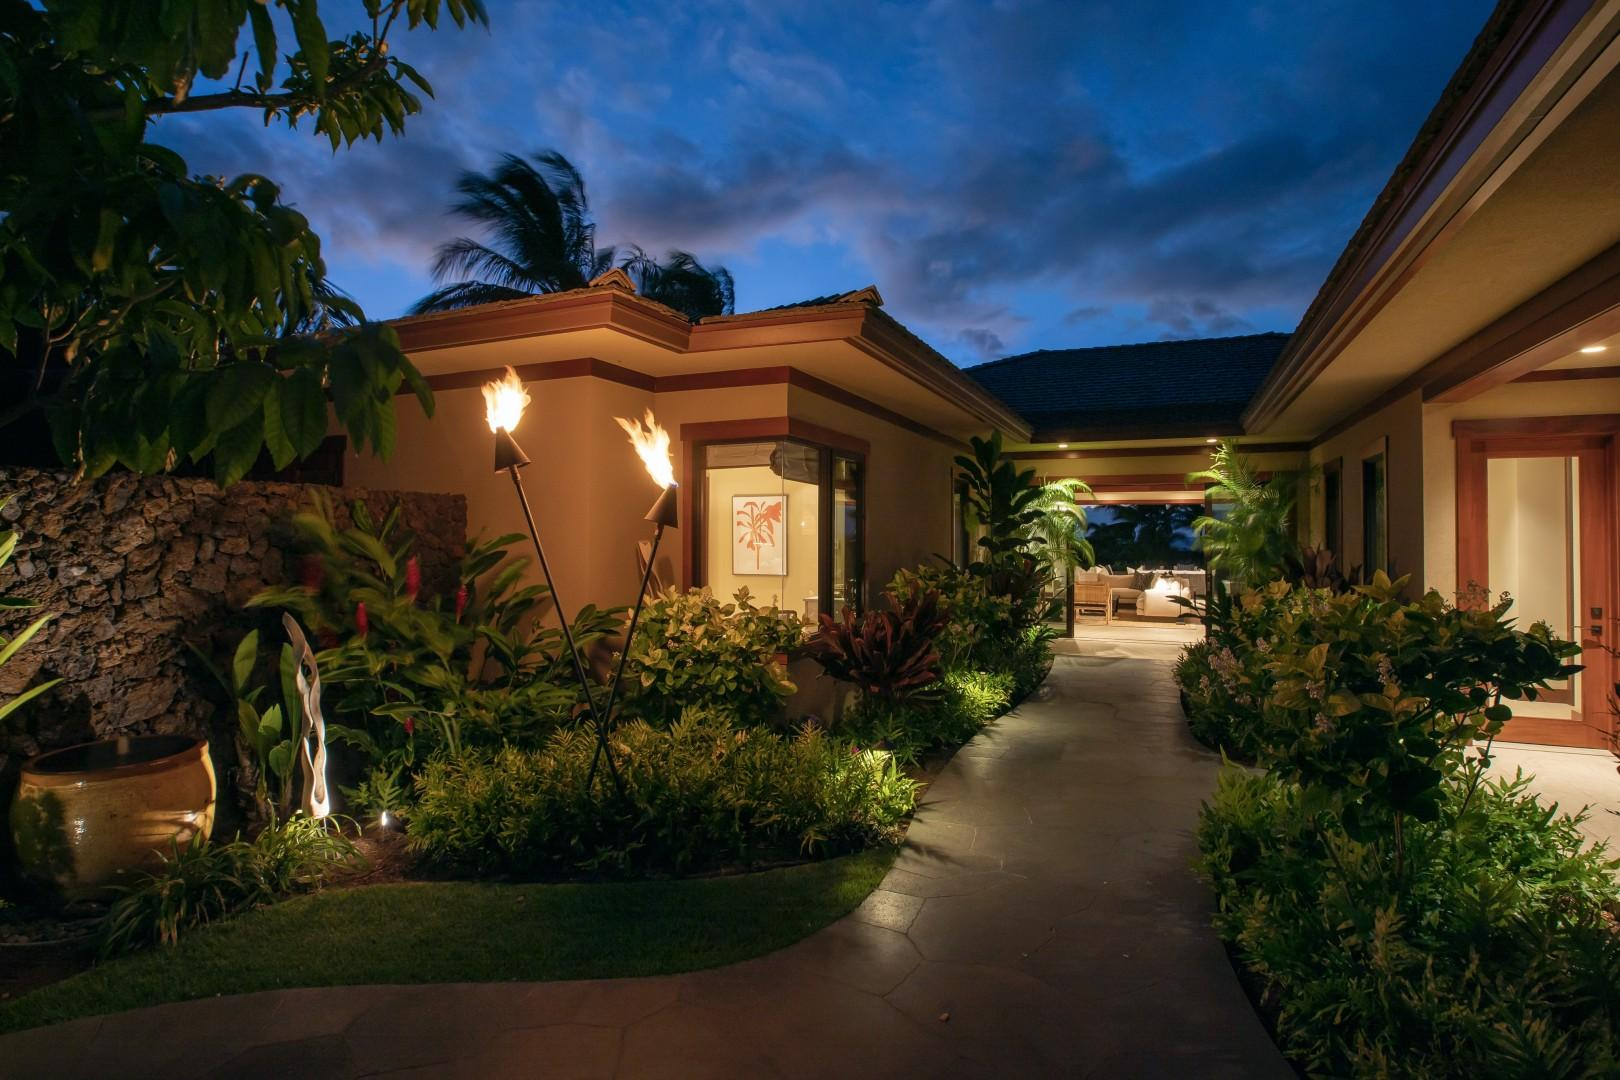 Front entryway at twilight with tiki torches lit.